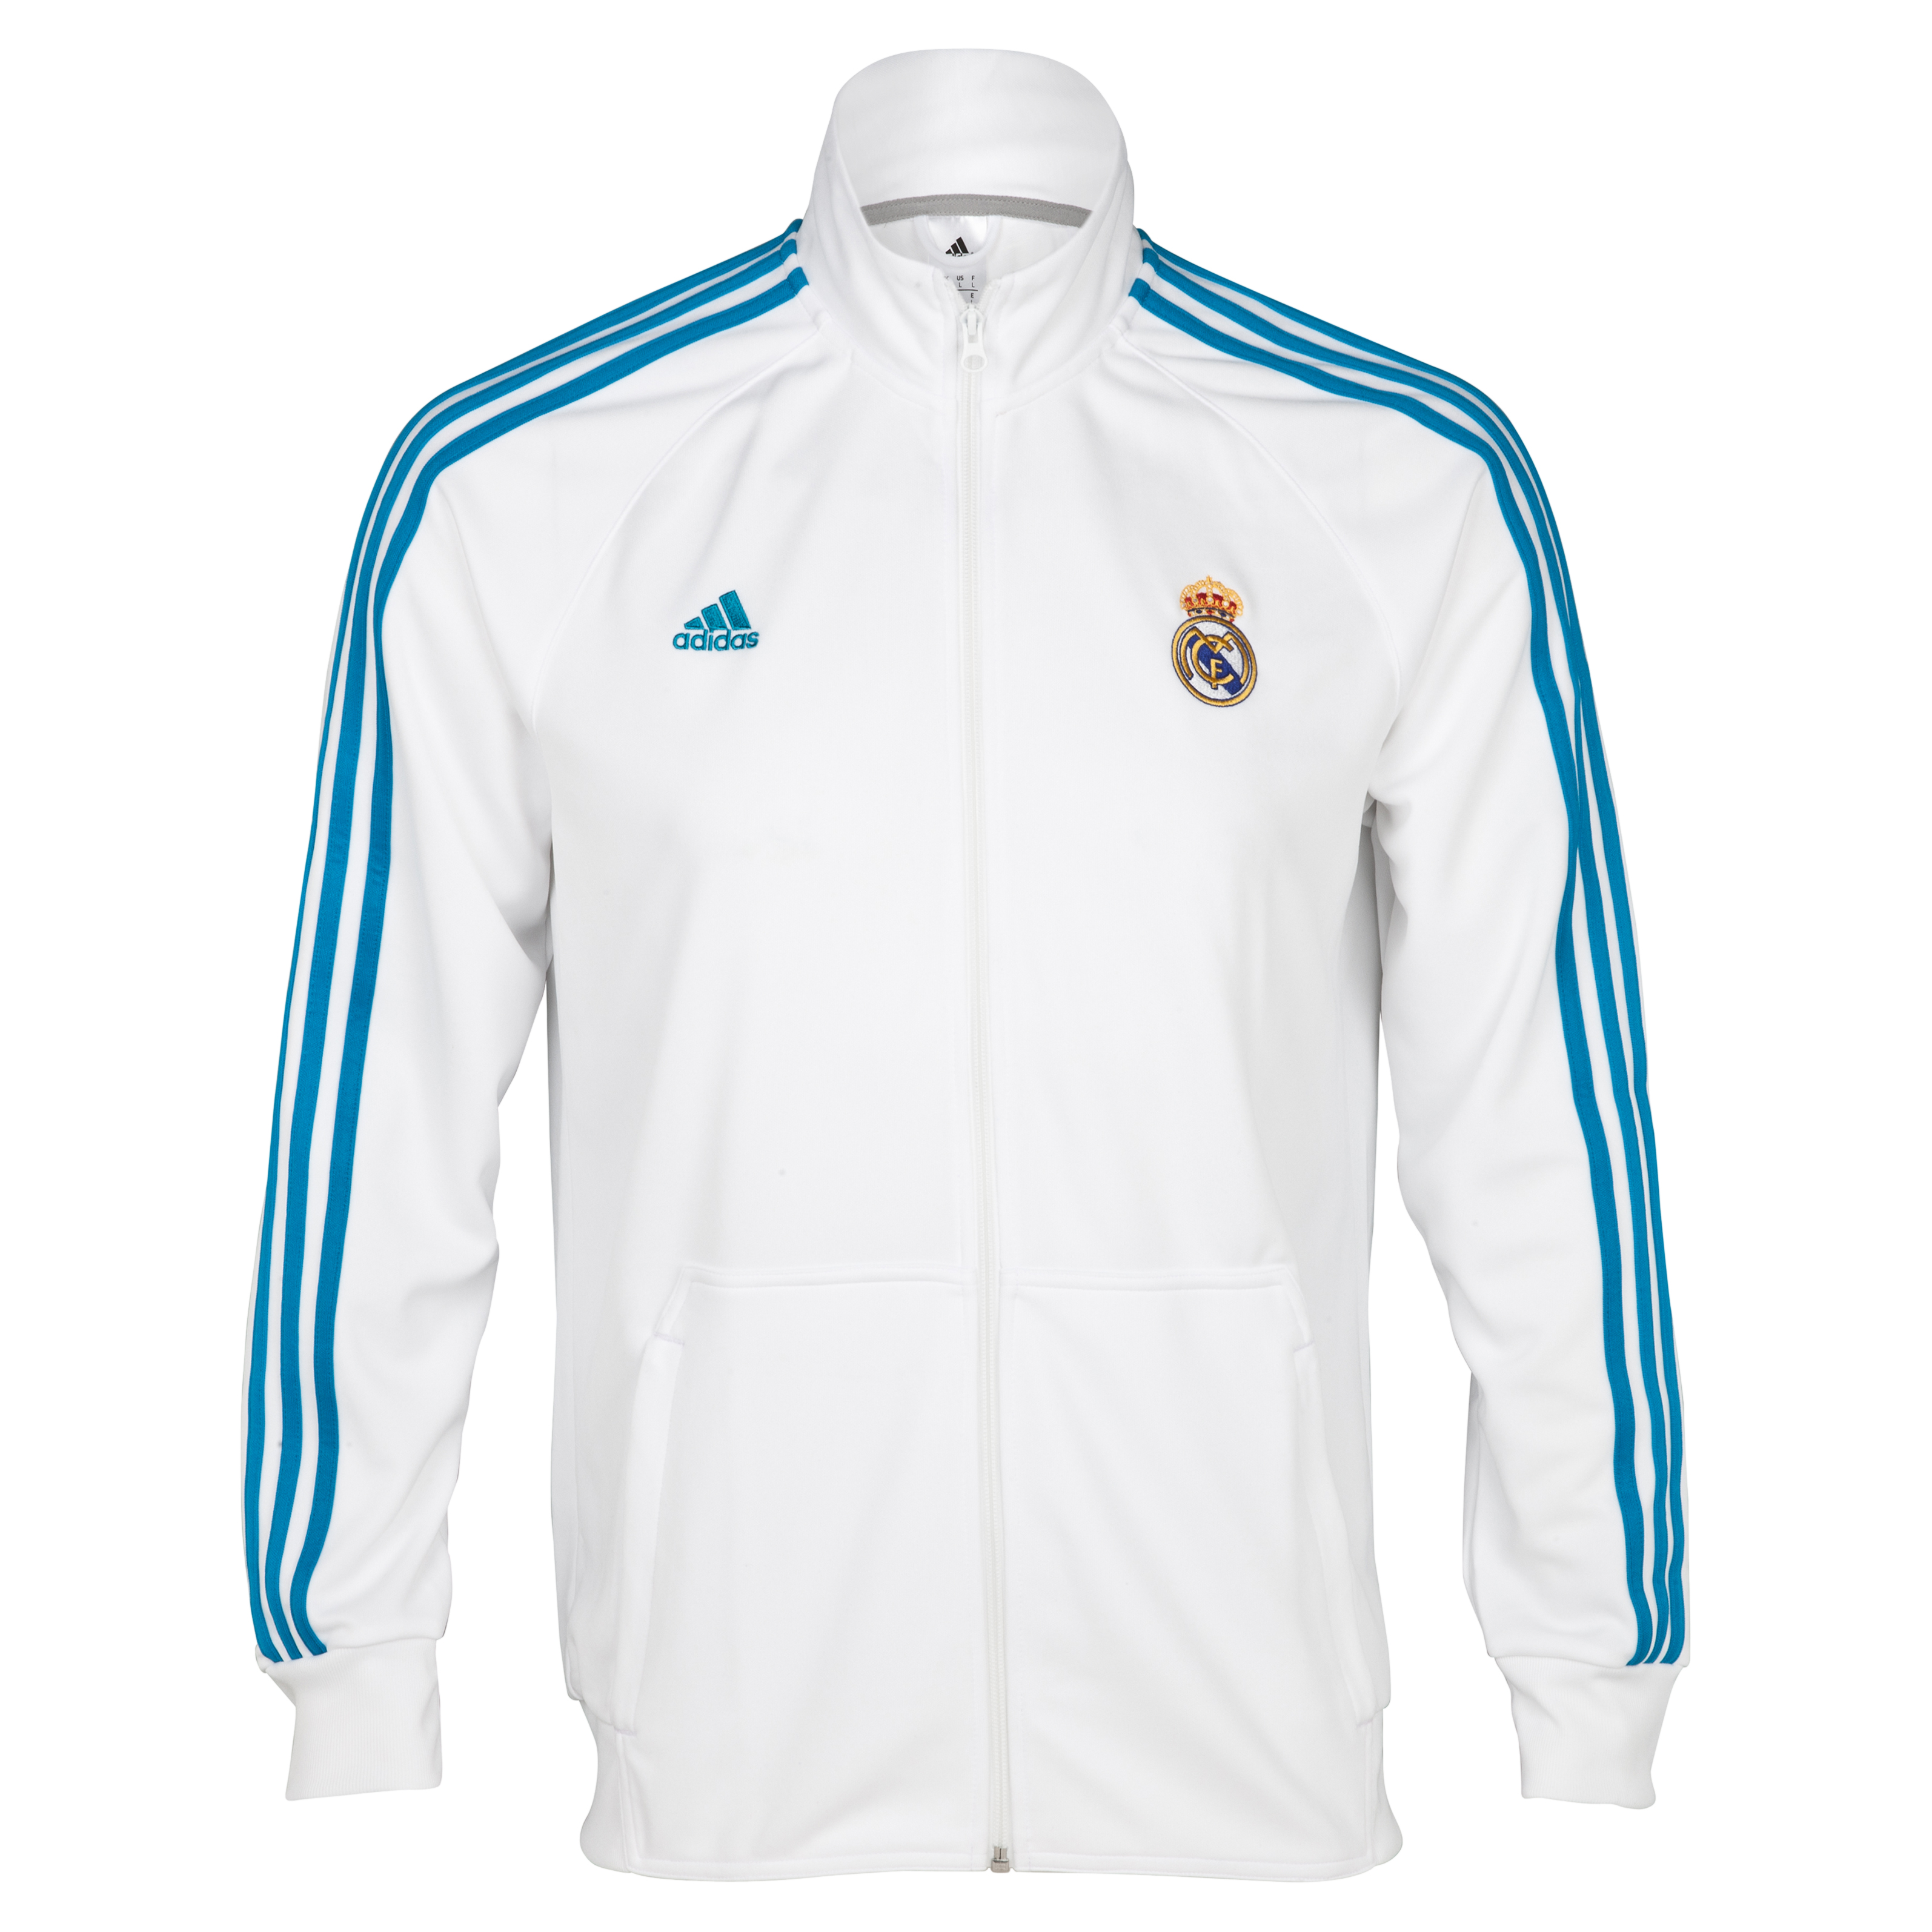 Real Madrid Core Track Top - White/Turquoise